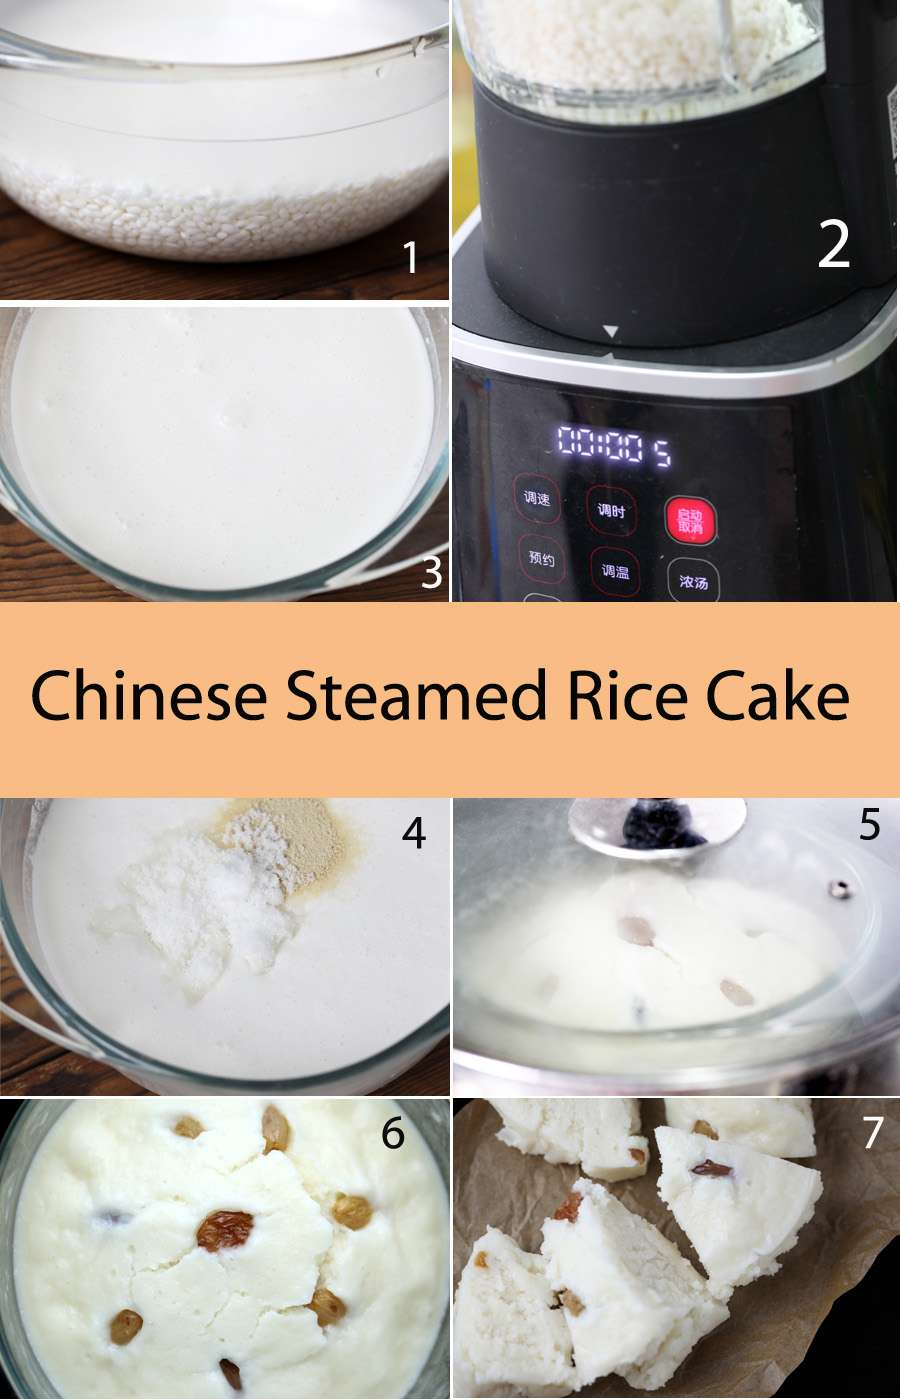 Chinese steamed rice cake steps